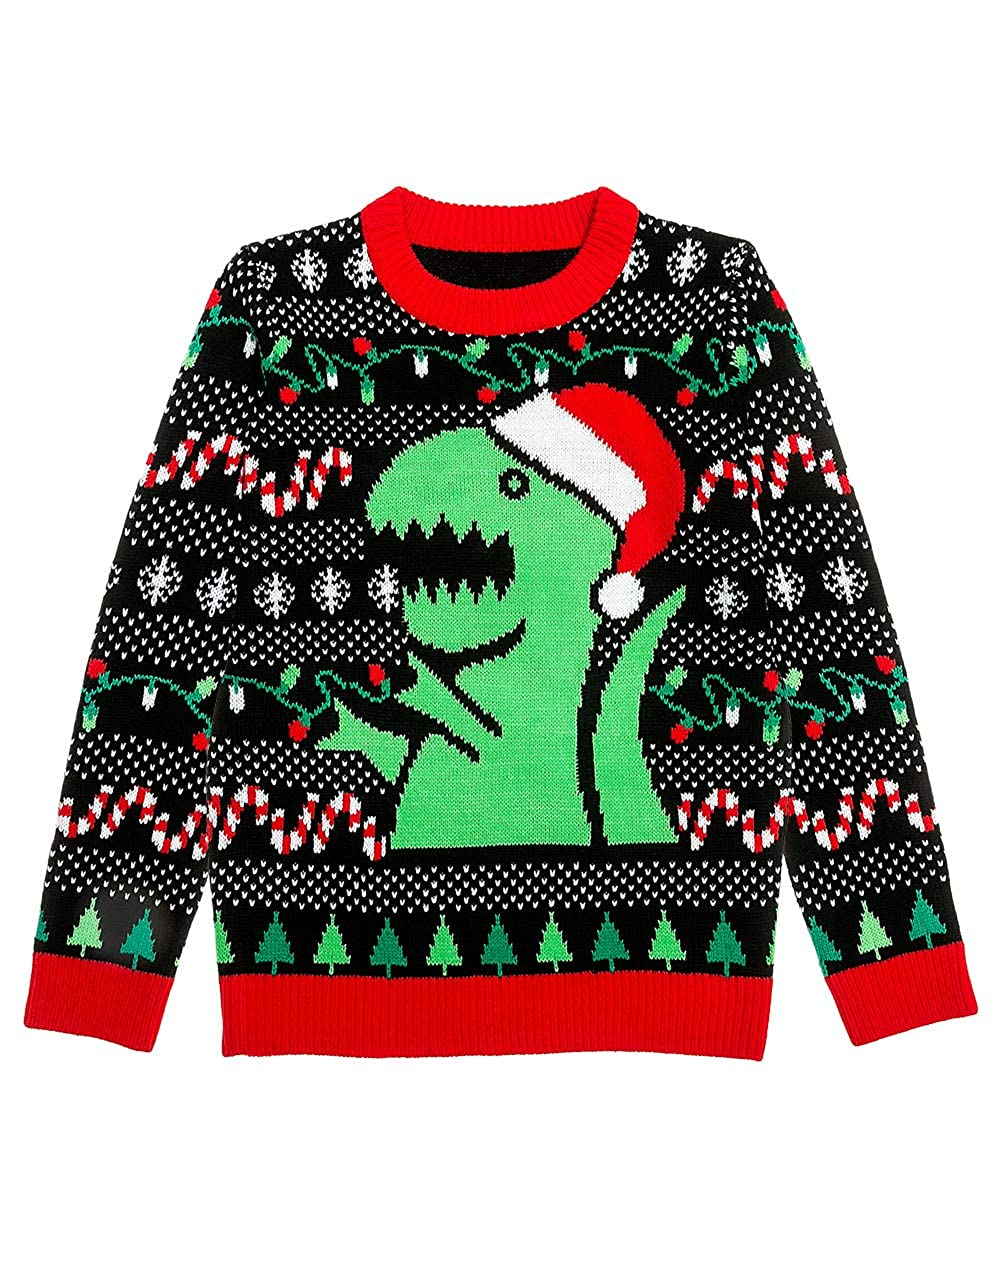 Big Trex Santa Ugly Christmas Sweater - Toddler Boys 2y - 6y Funny Outfit GaMPt0tg5d